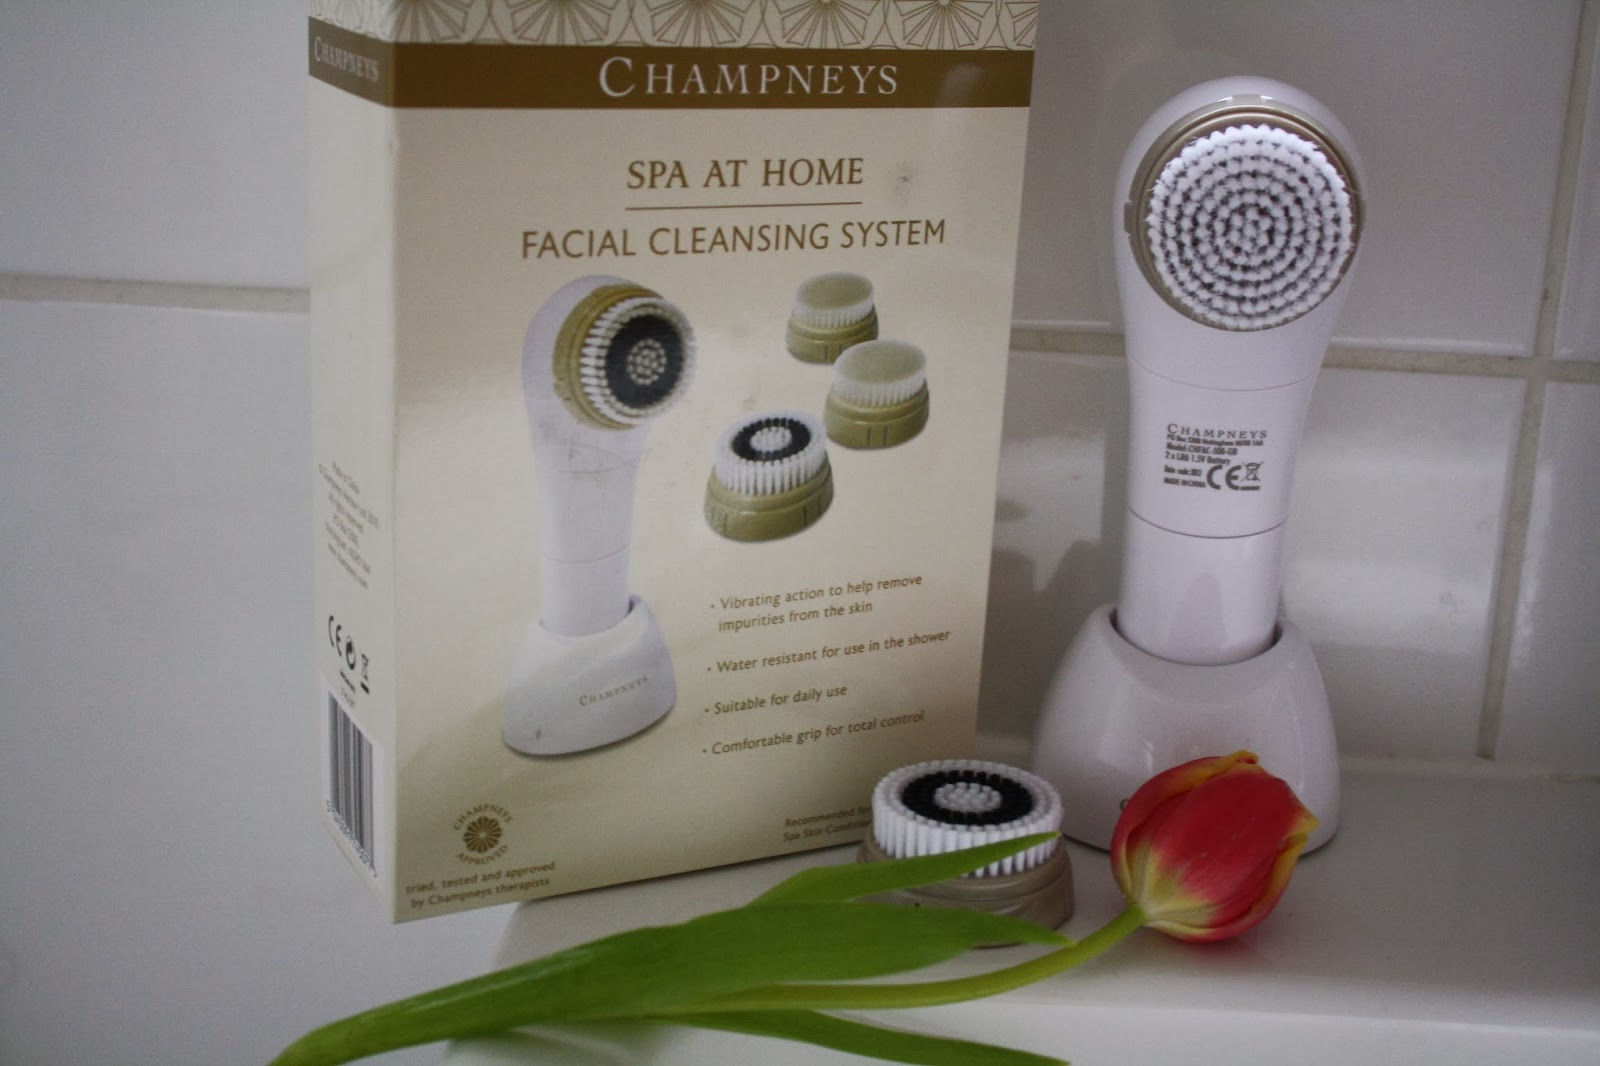 Cleaning facial system